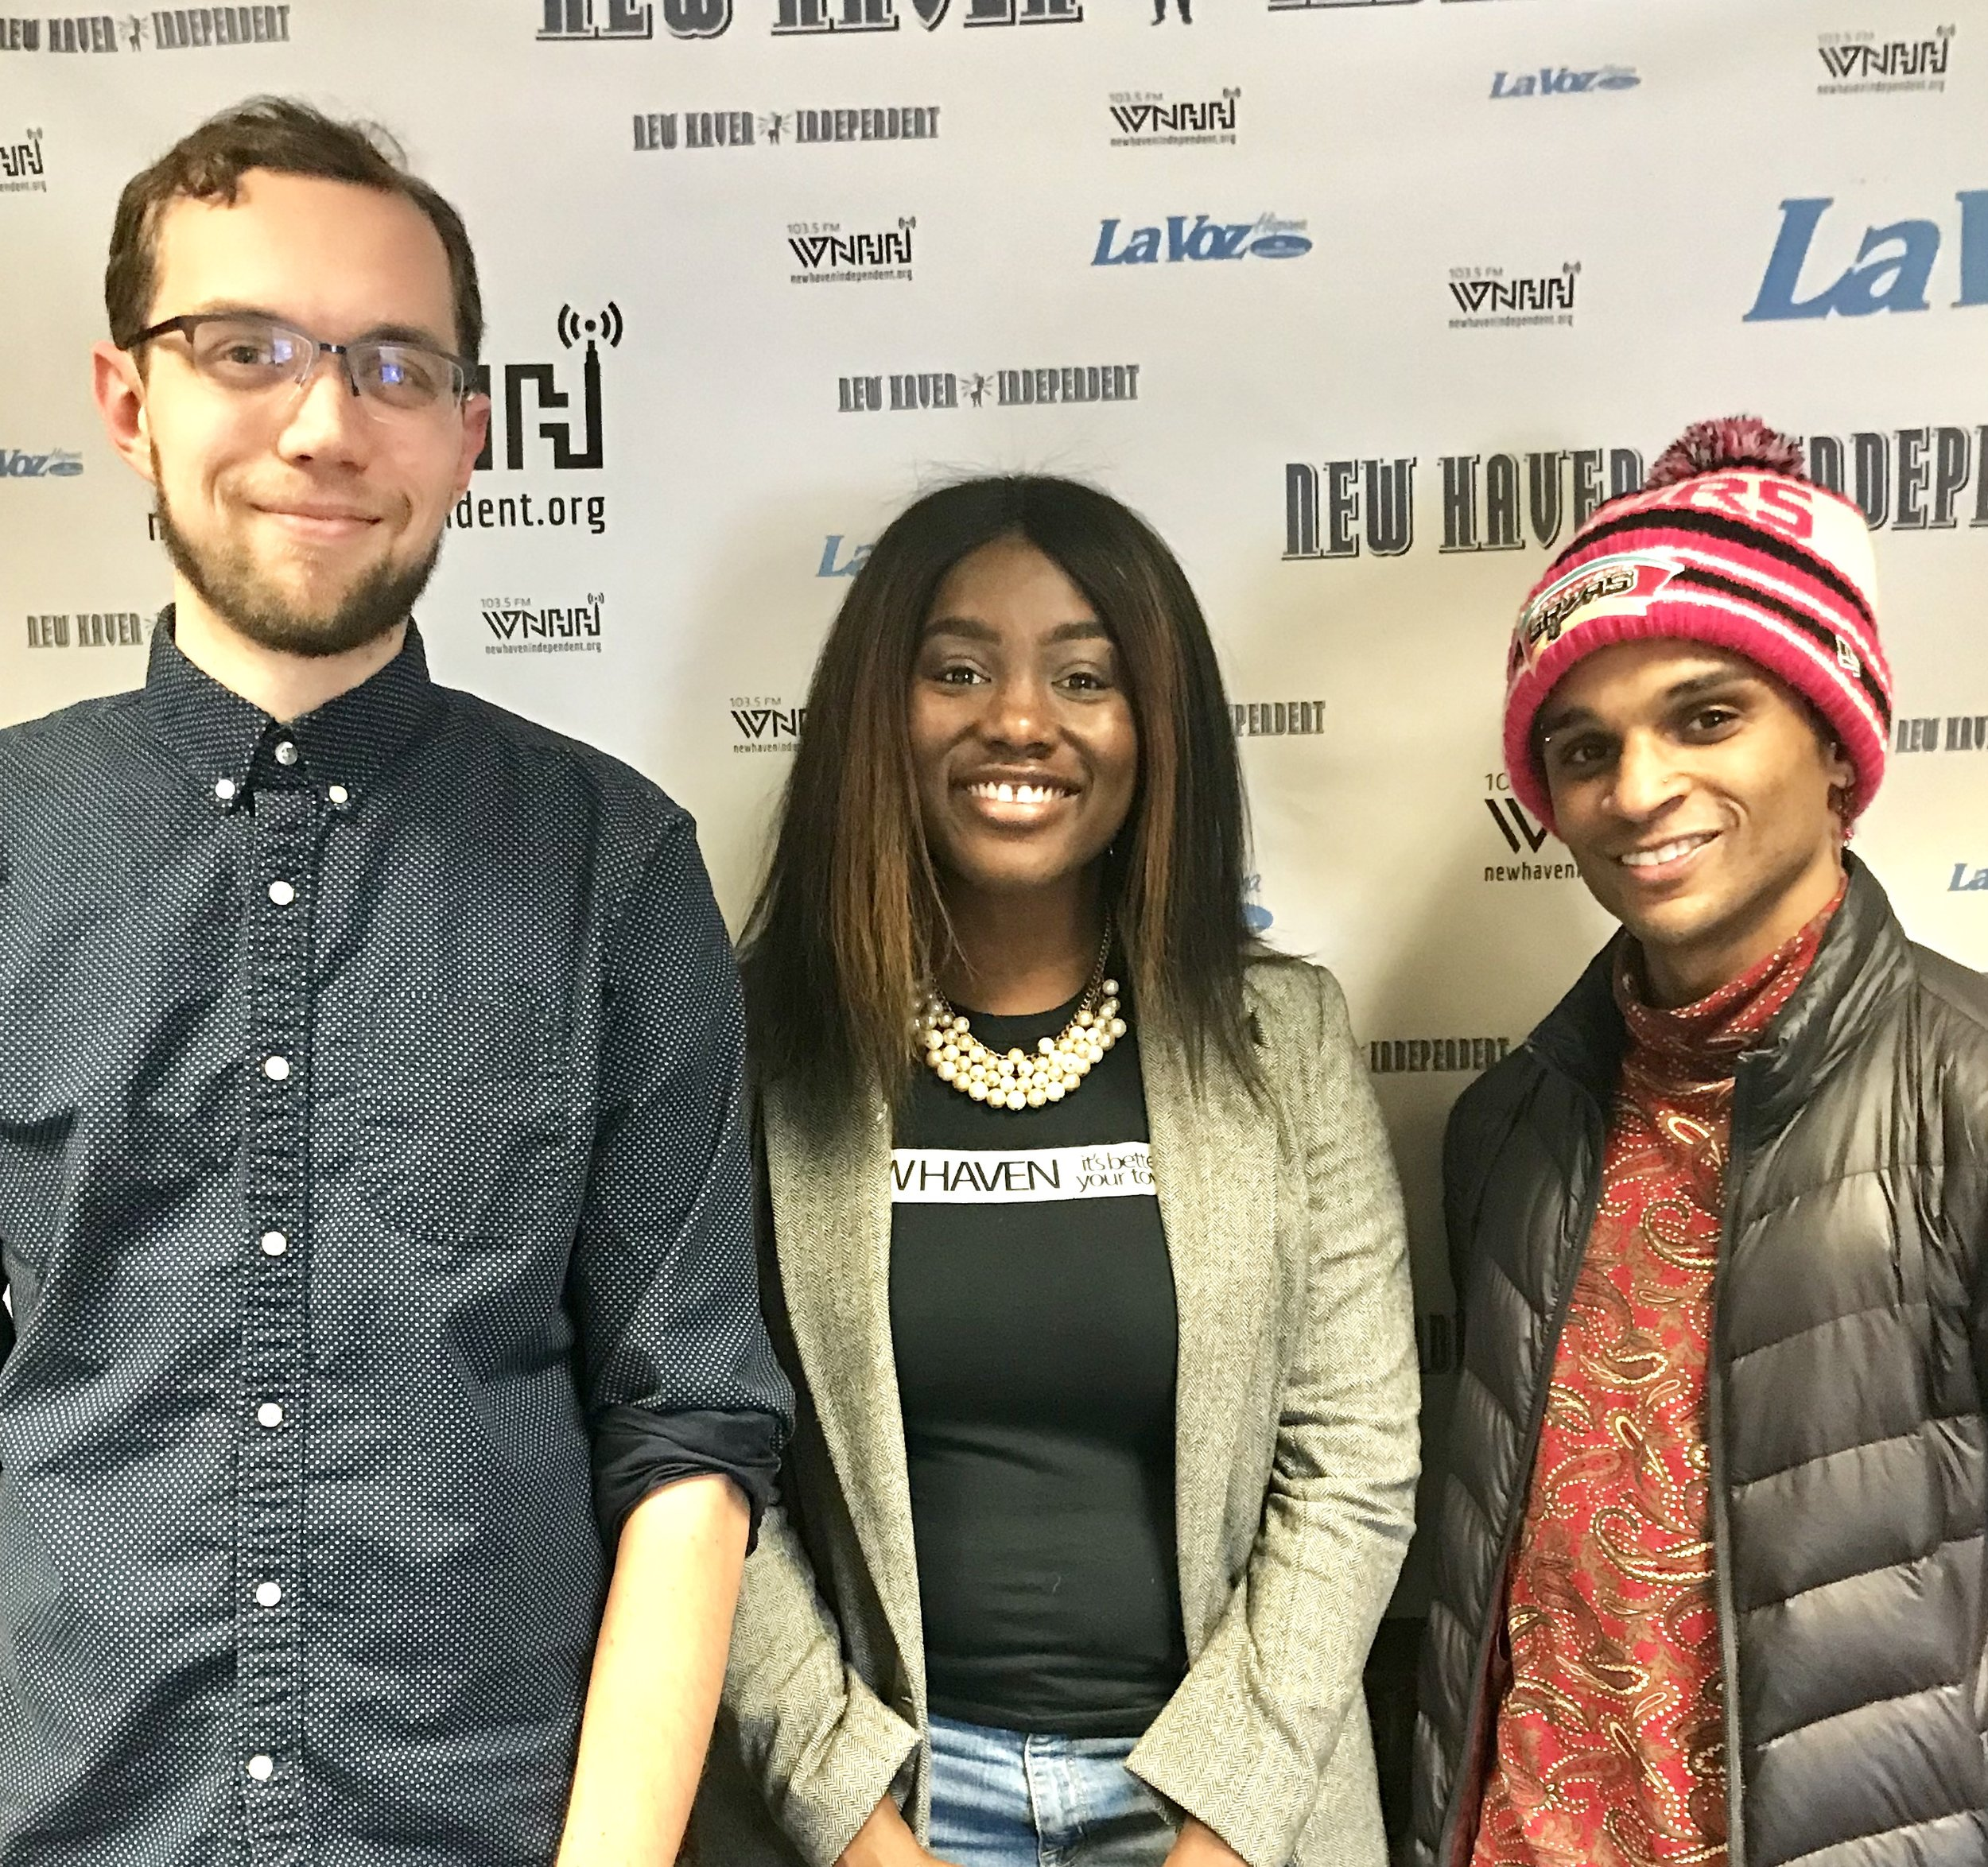 Host Mercy Quaye takes on Police Brutality with guest Chris Desir & Wally Hilke.